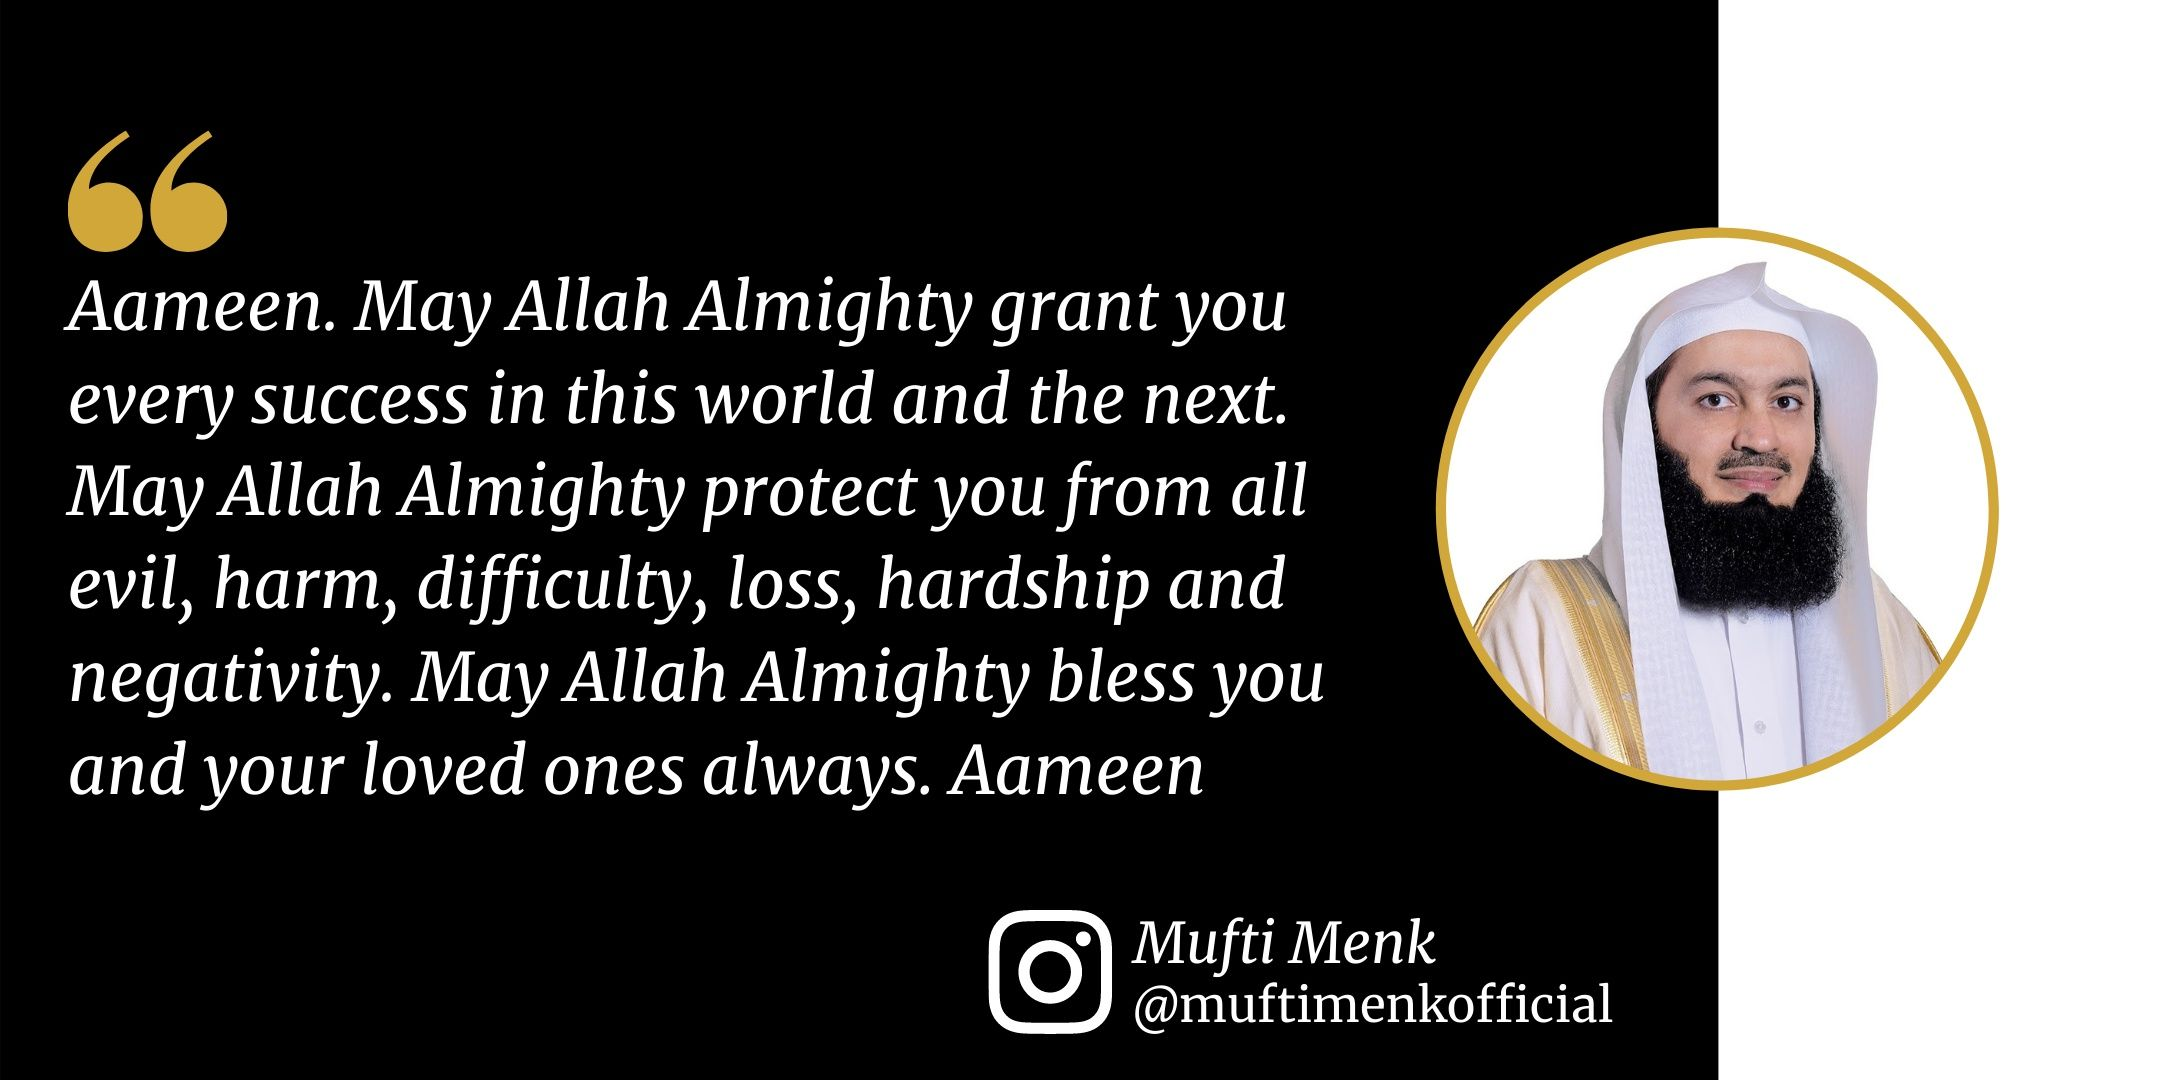 Actress Sana Khan - Mufti Menk   @muftimenkofficial  Aameen. May Allah Almighty grant you every success in this world and the next. May Allah Almighty protect you from all evil, harm, difficulty, loss, hardship and negativity. May Allah Almighty bless you and your loved ones always. Aameen